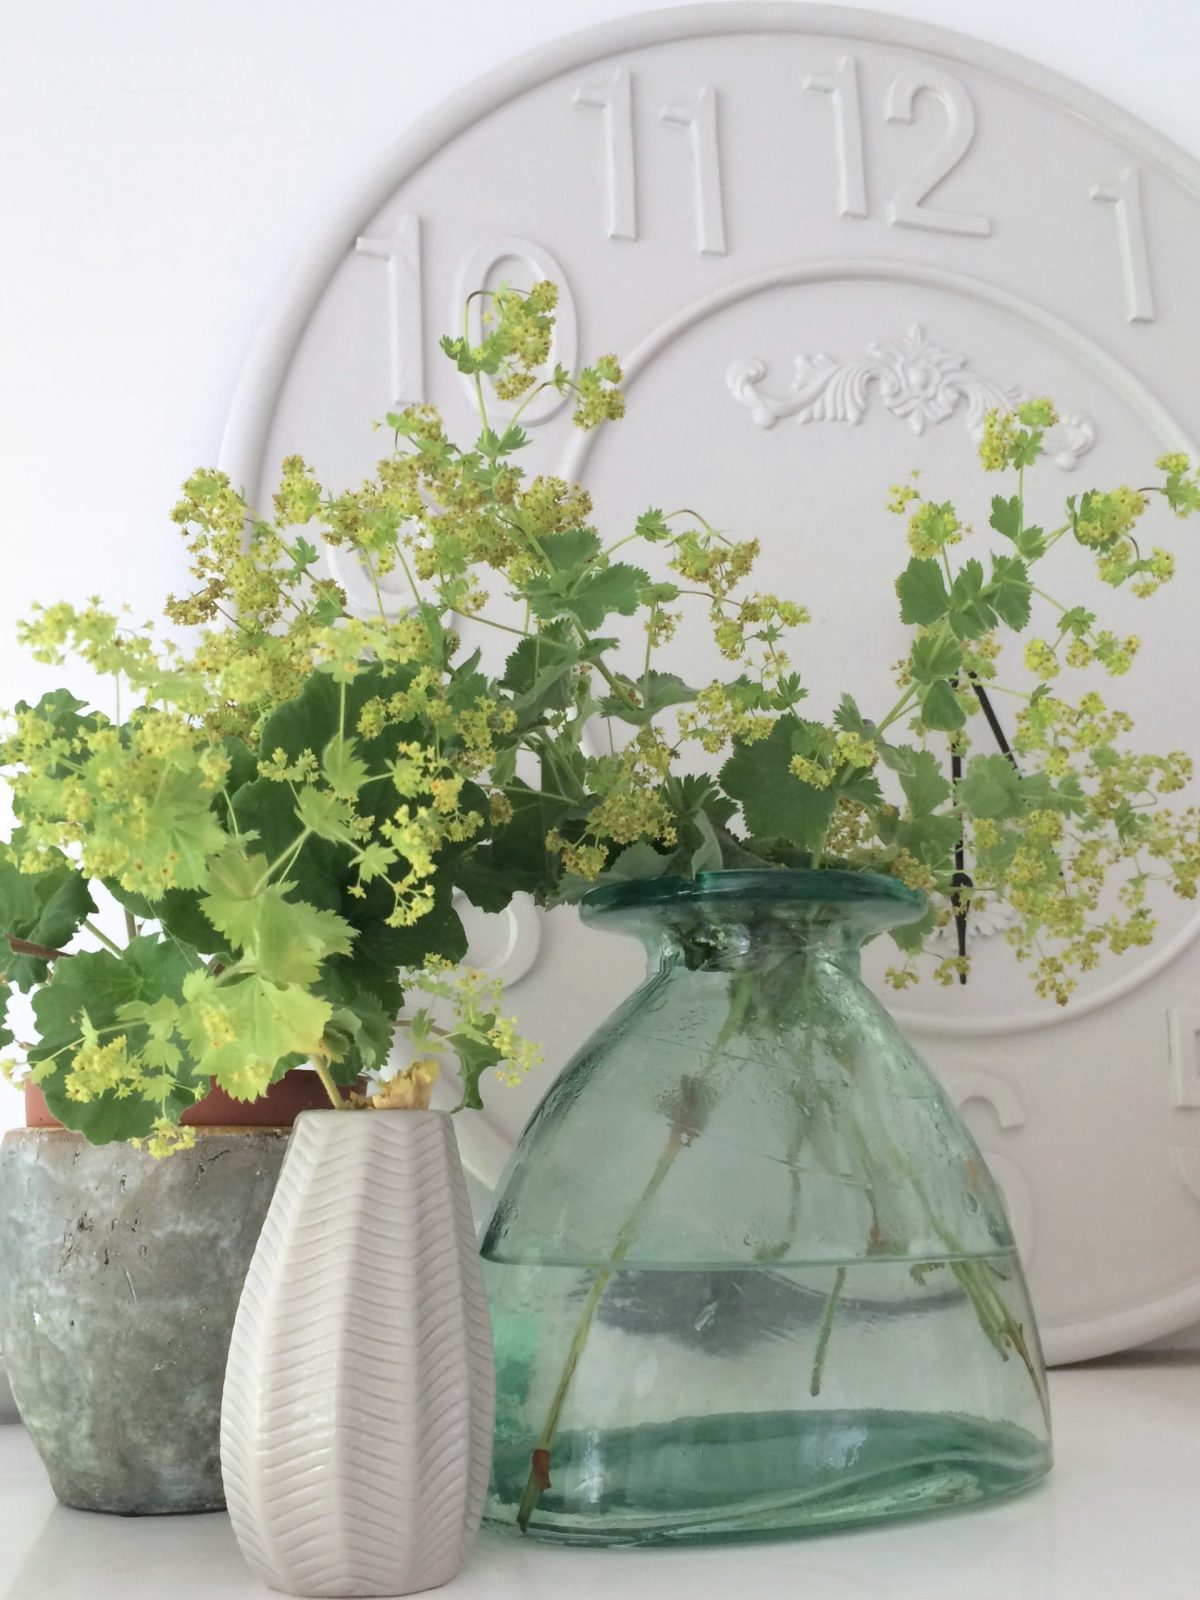 Lady's mantle in a vase, photo